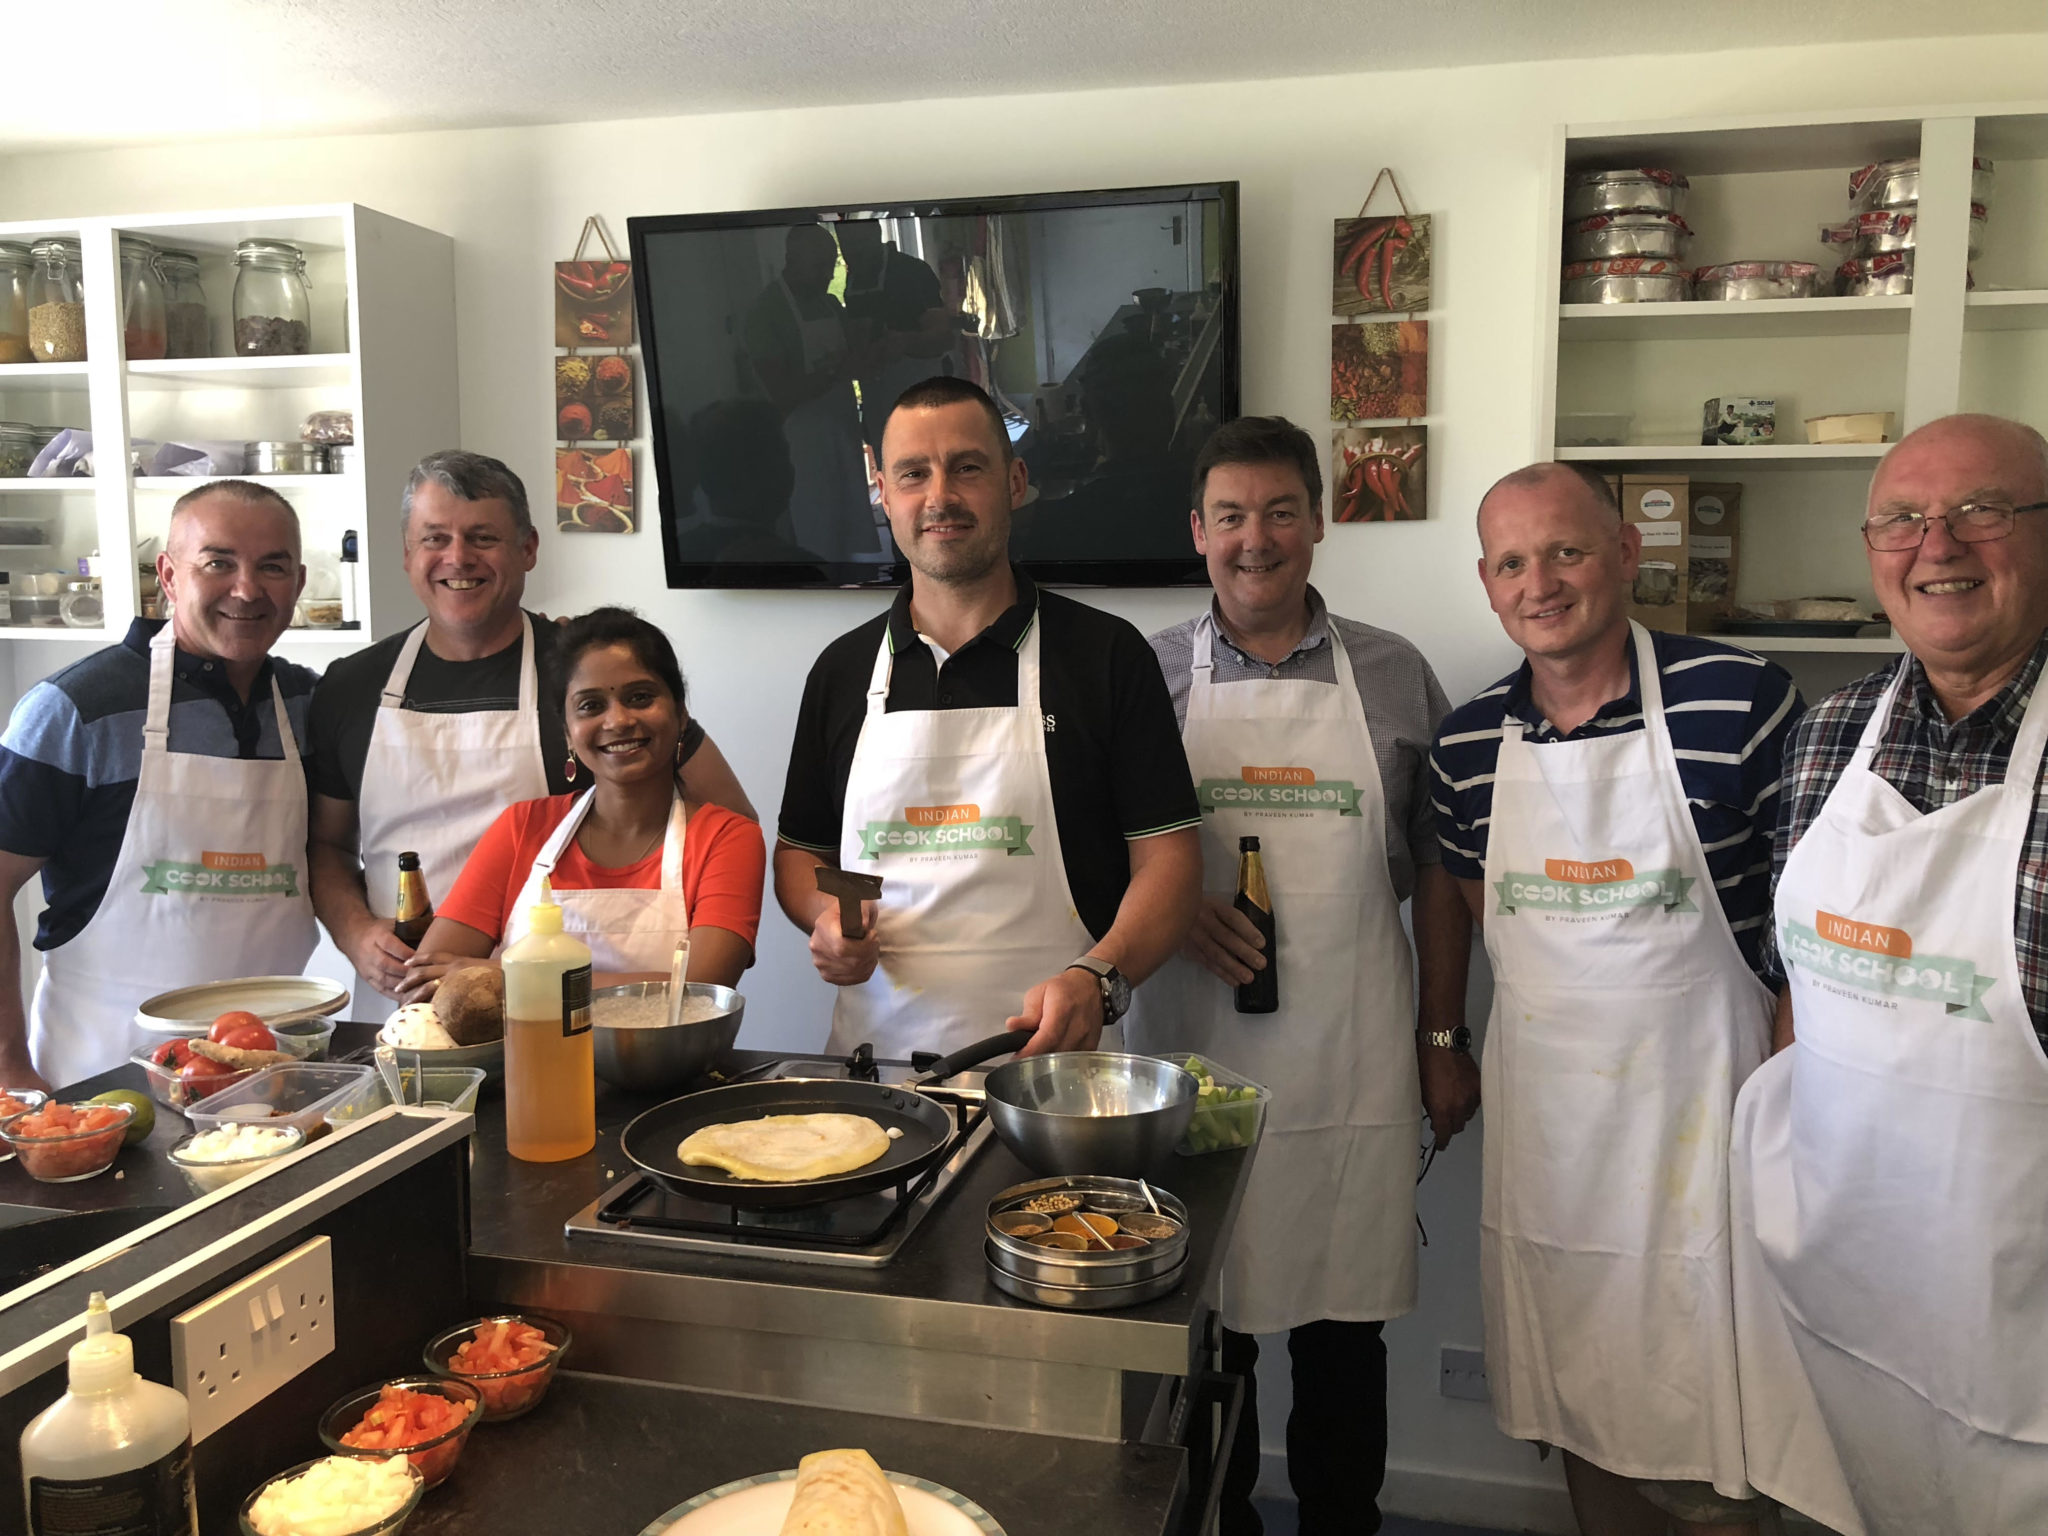 Swarna demonstrating at Inadian Cook School, Scotland